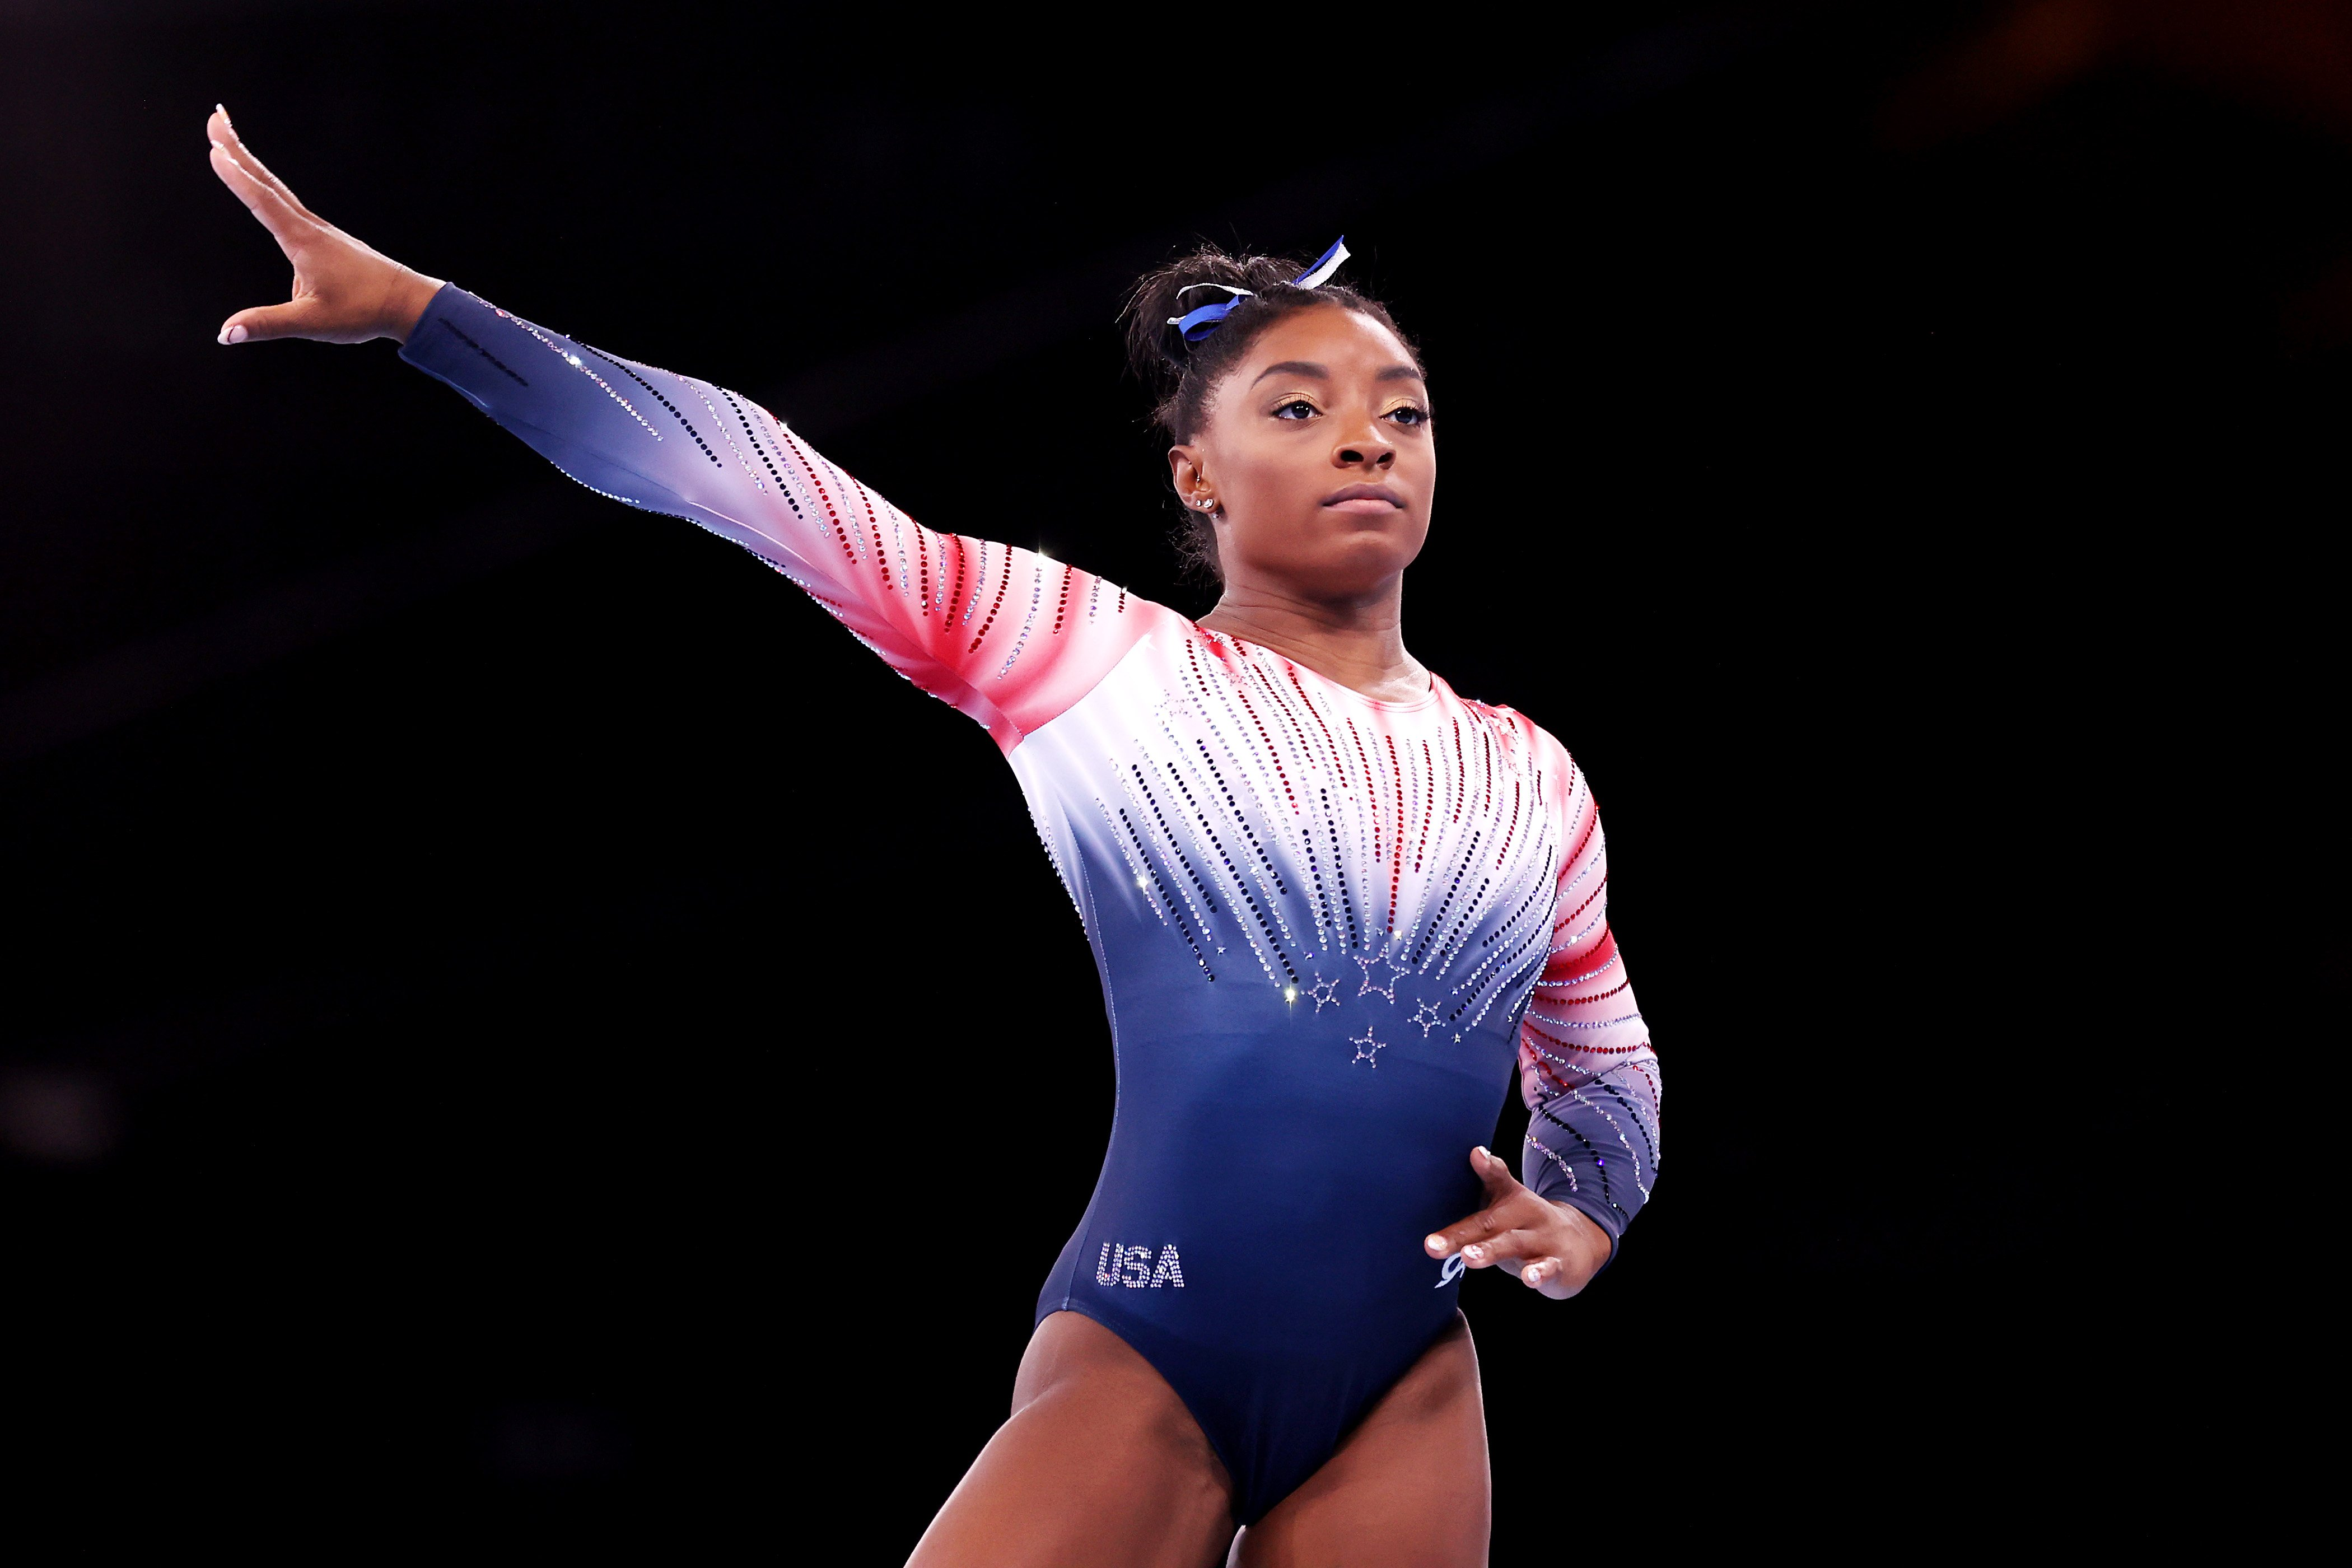 Simone Biles returns to Olympic competition for balance beam final